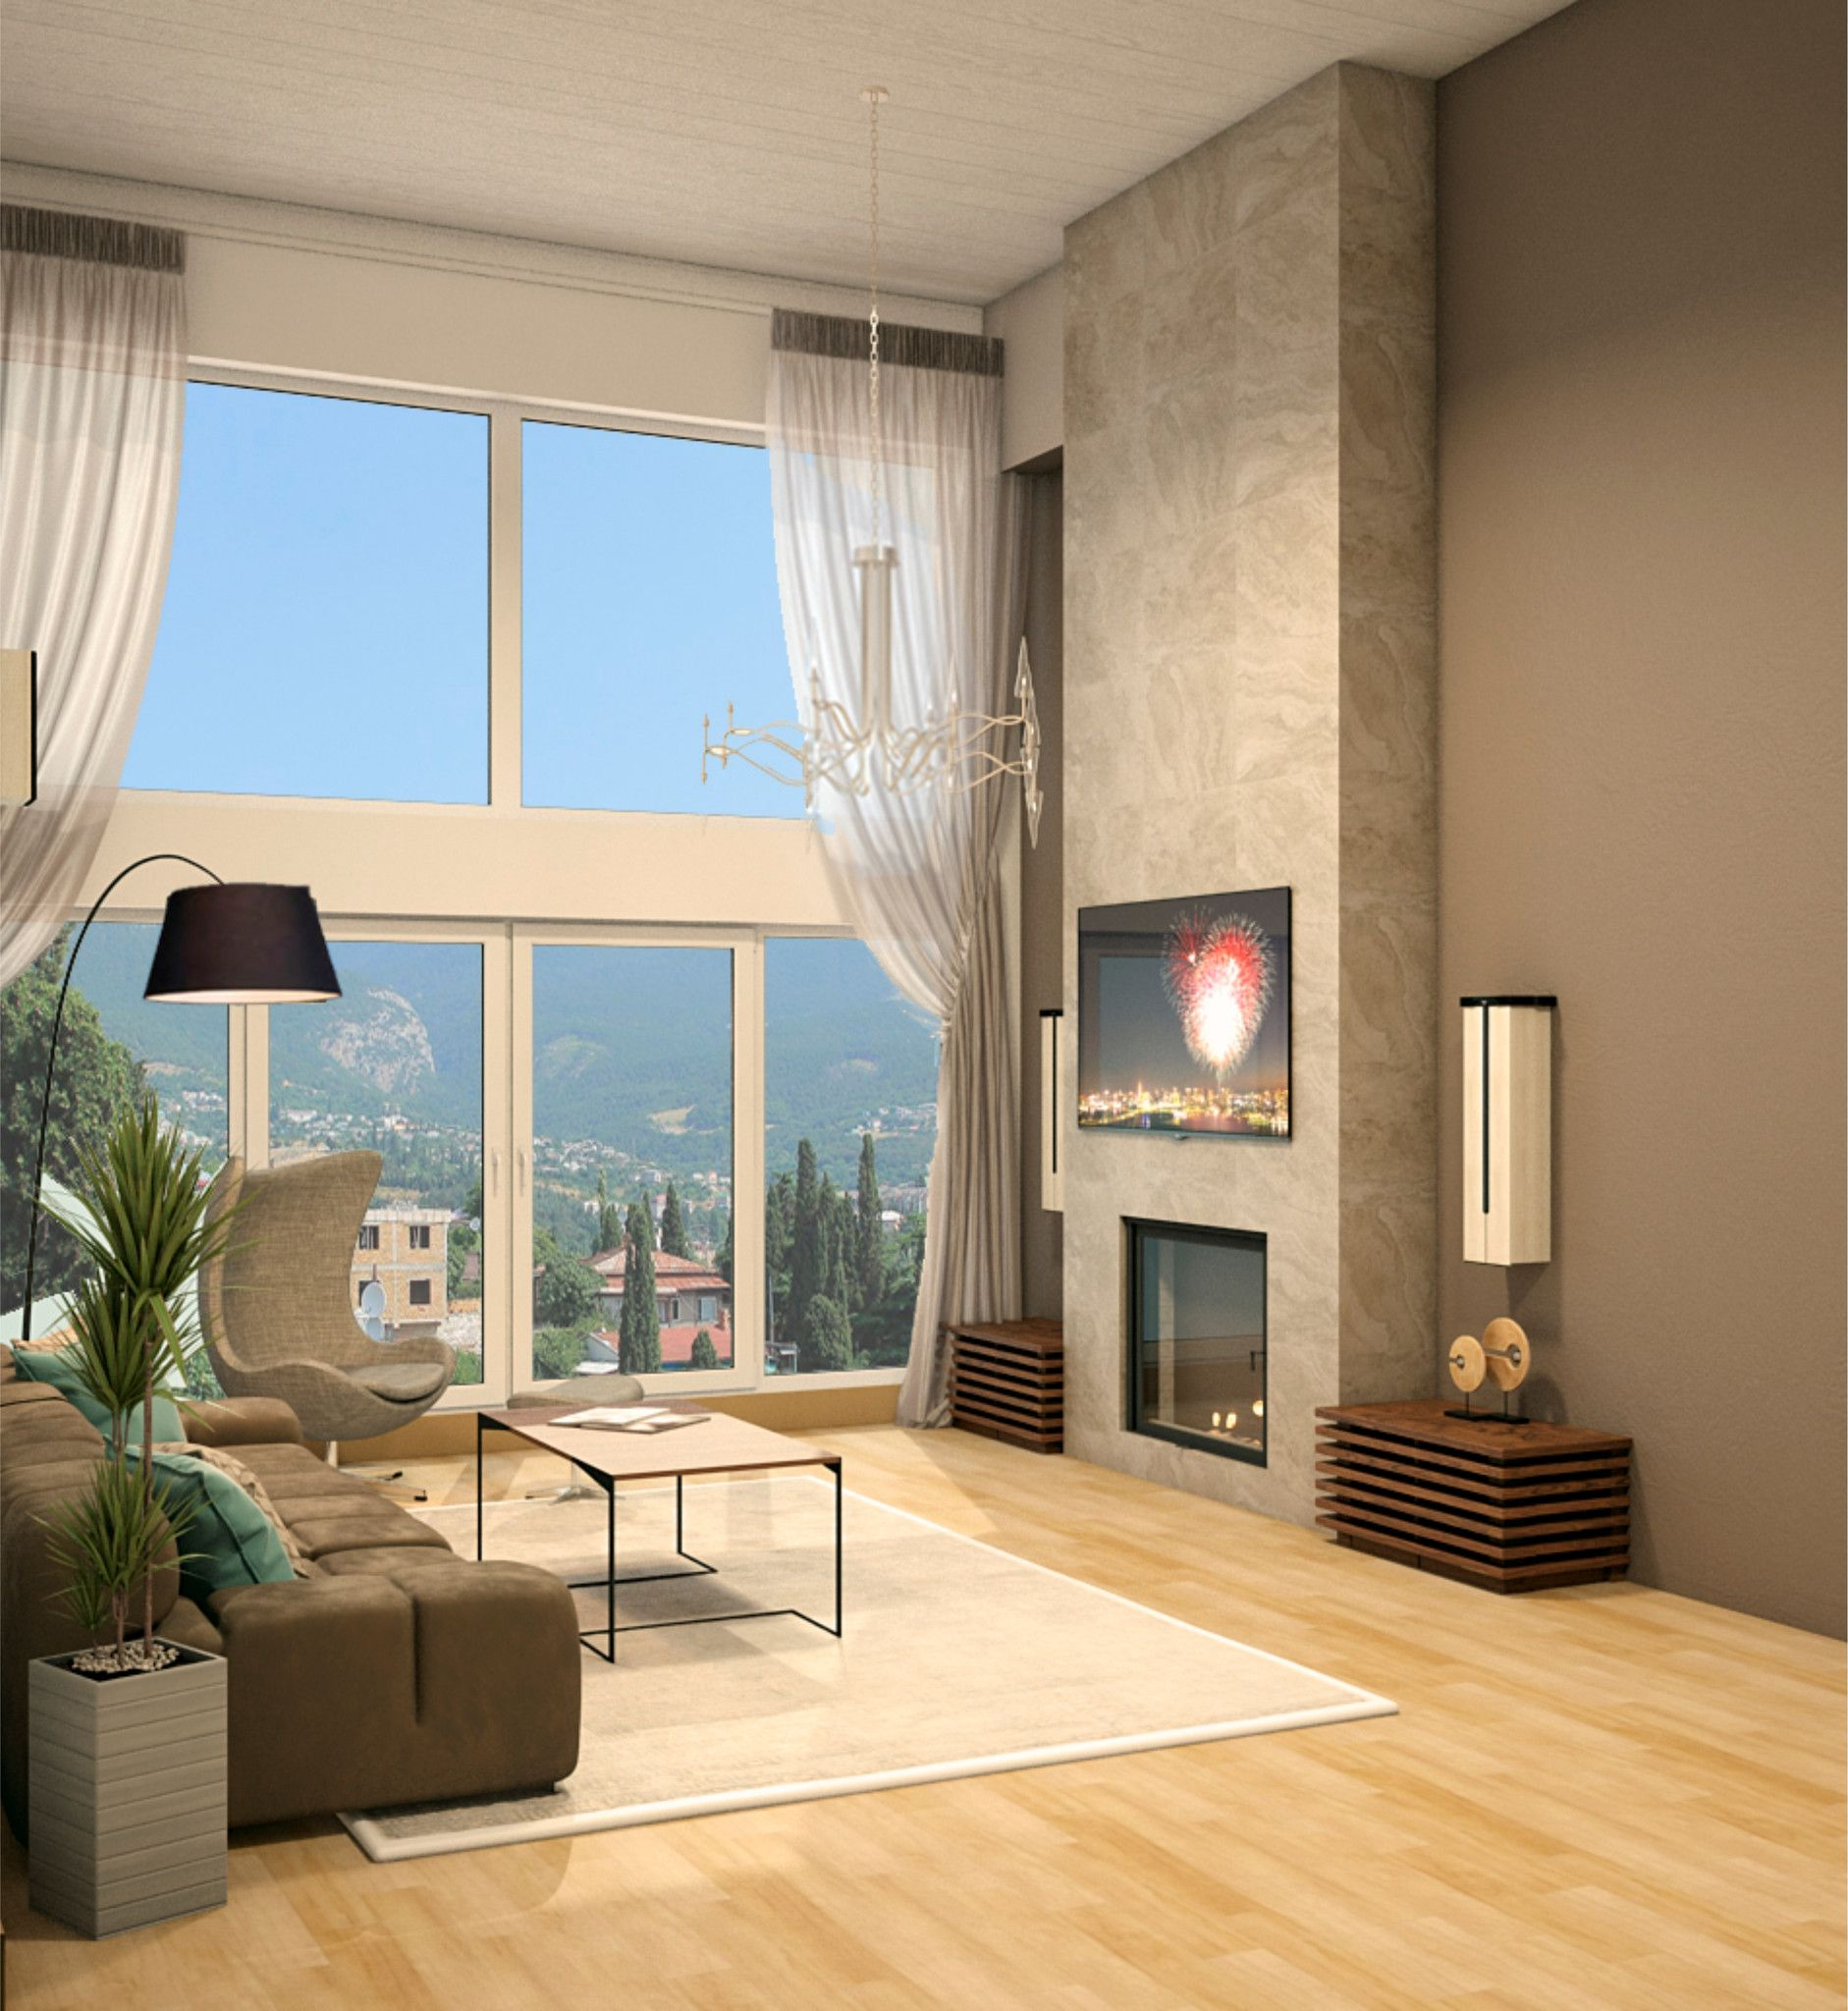 Living Room Design Online Enchanting Thinking Of Shopping Emfurn But Not Sure How Your Room Will Appear Design Decoration